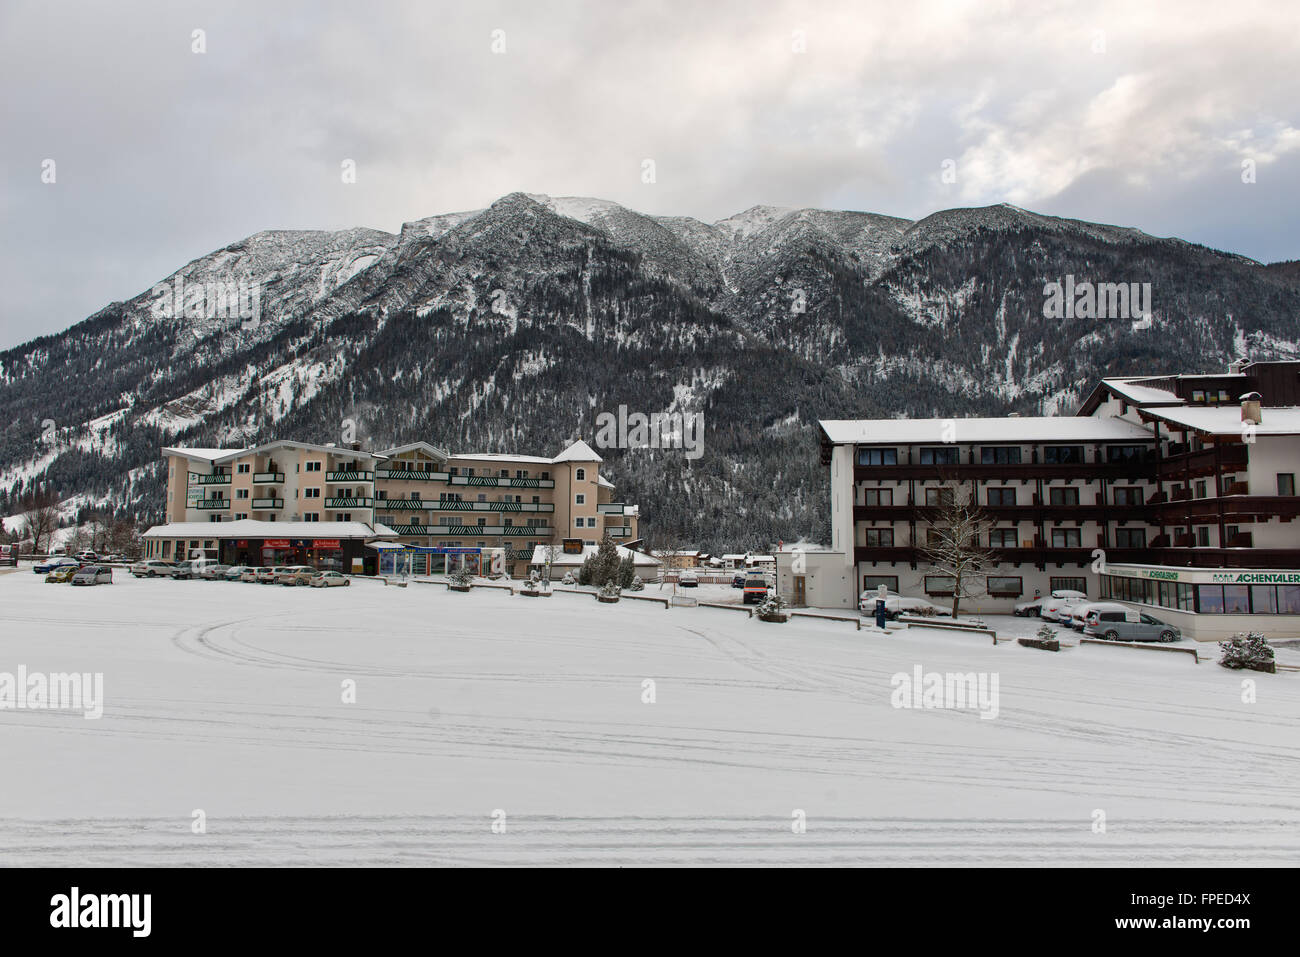 Village in Achenkirch, Austria with large mountain in background during cold, overcast winter day - Stock Image